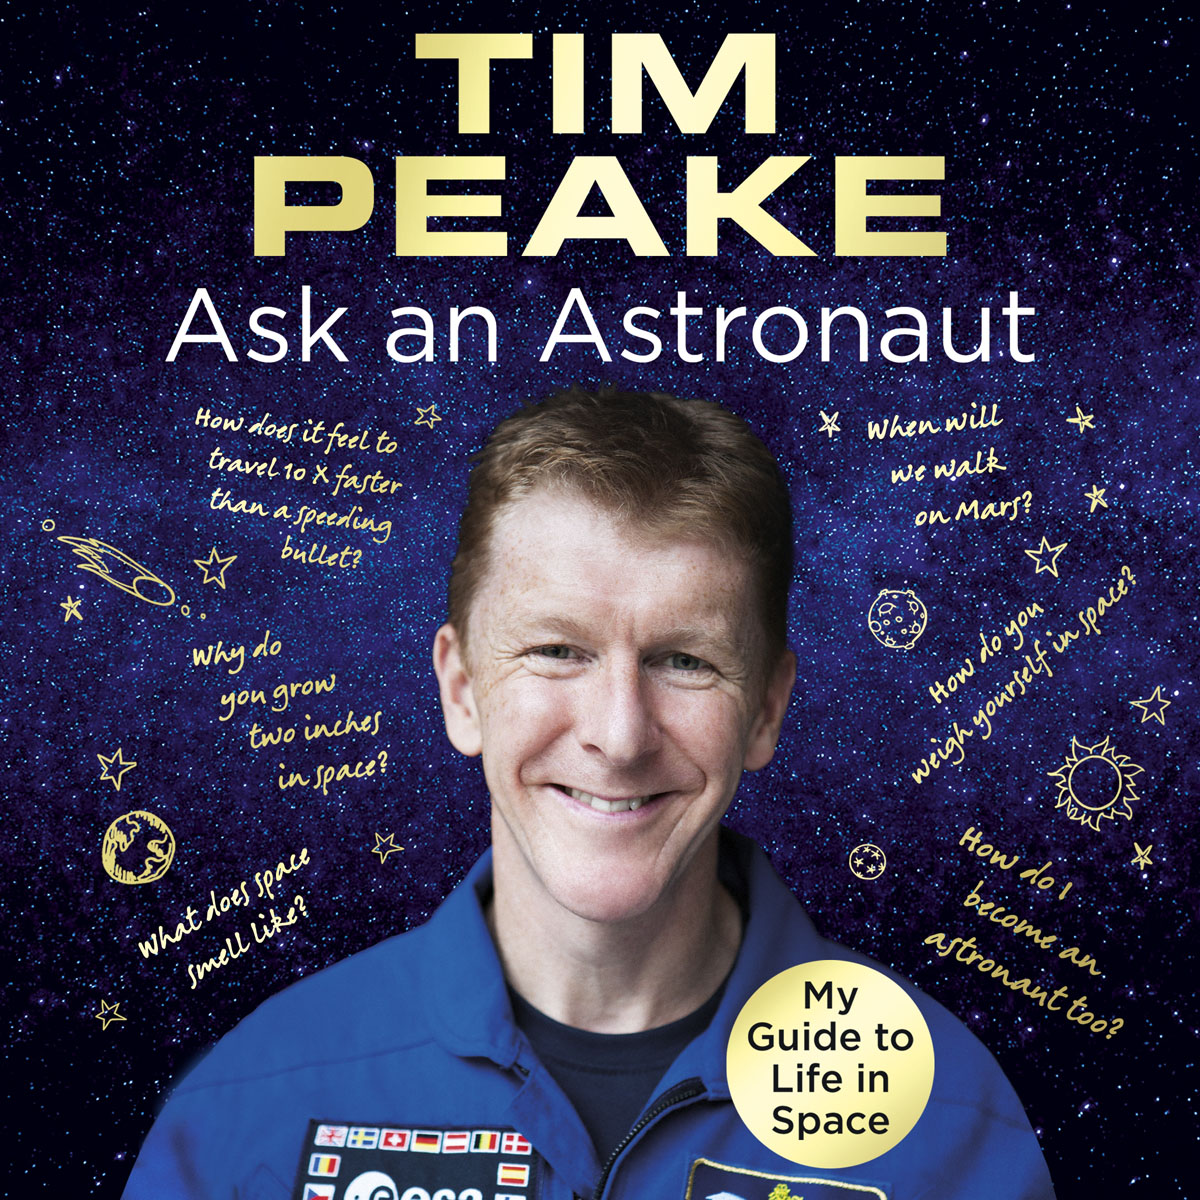 Ask an Astronaut (CD Audiobook) from the earth to the moon